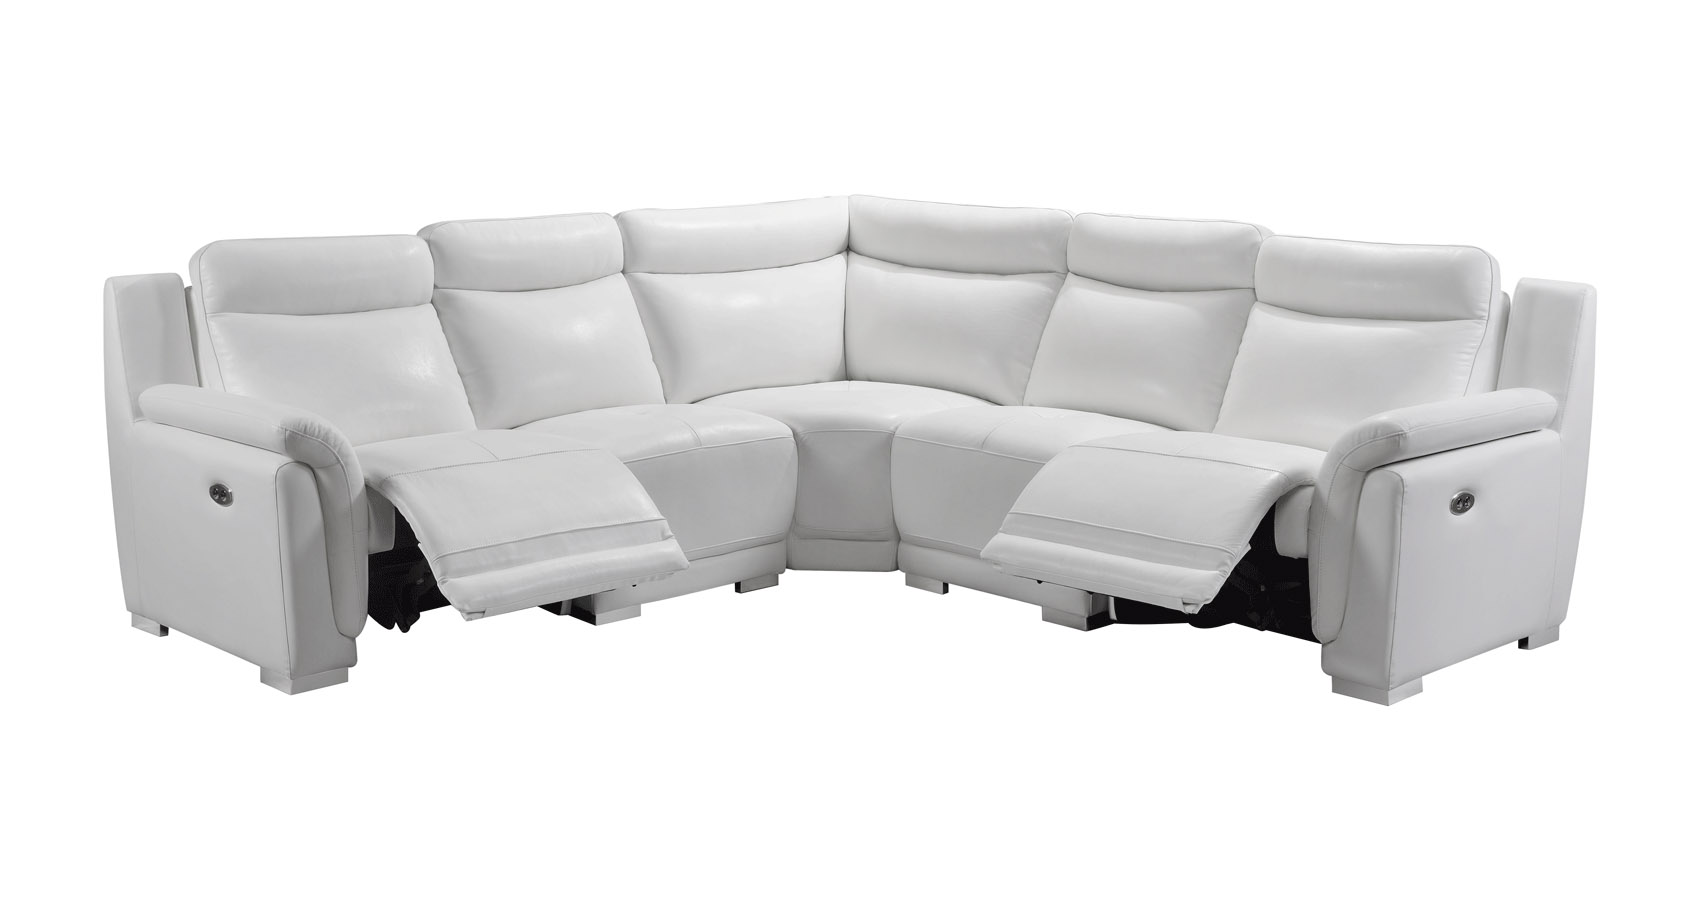 Italian Leather Sectional Sofa Set with Recliner Chair - Click Image to Close